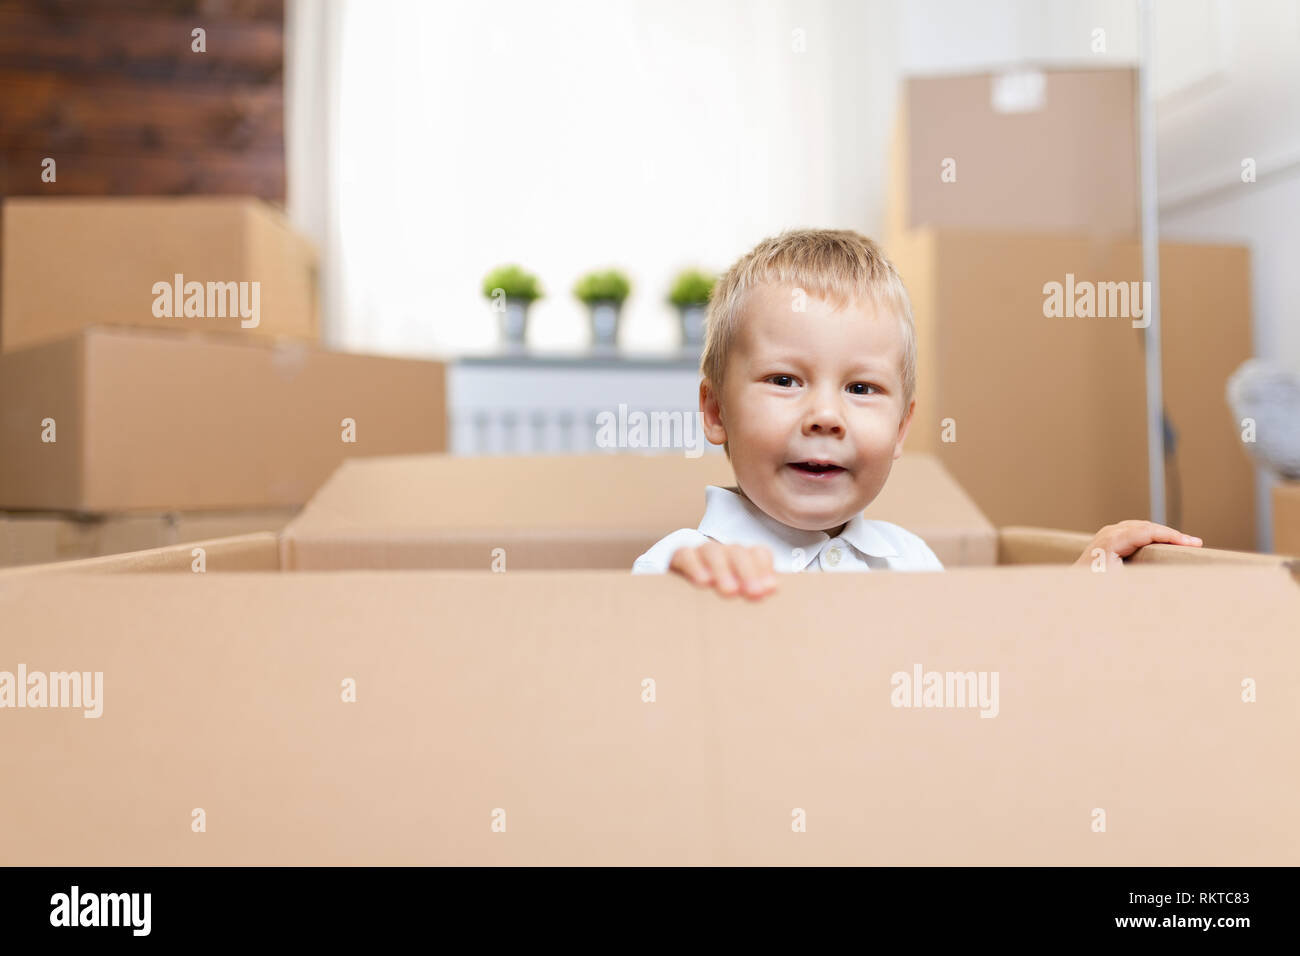 Cute toddler helping out packing boxes and moving - Stock Image